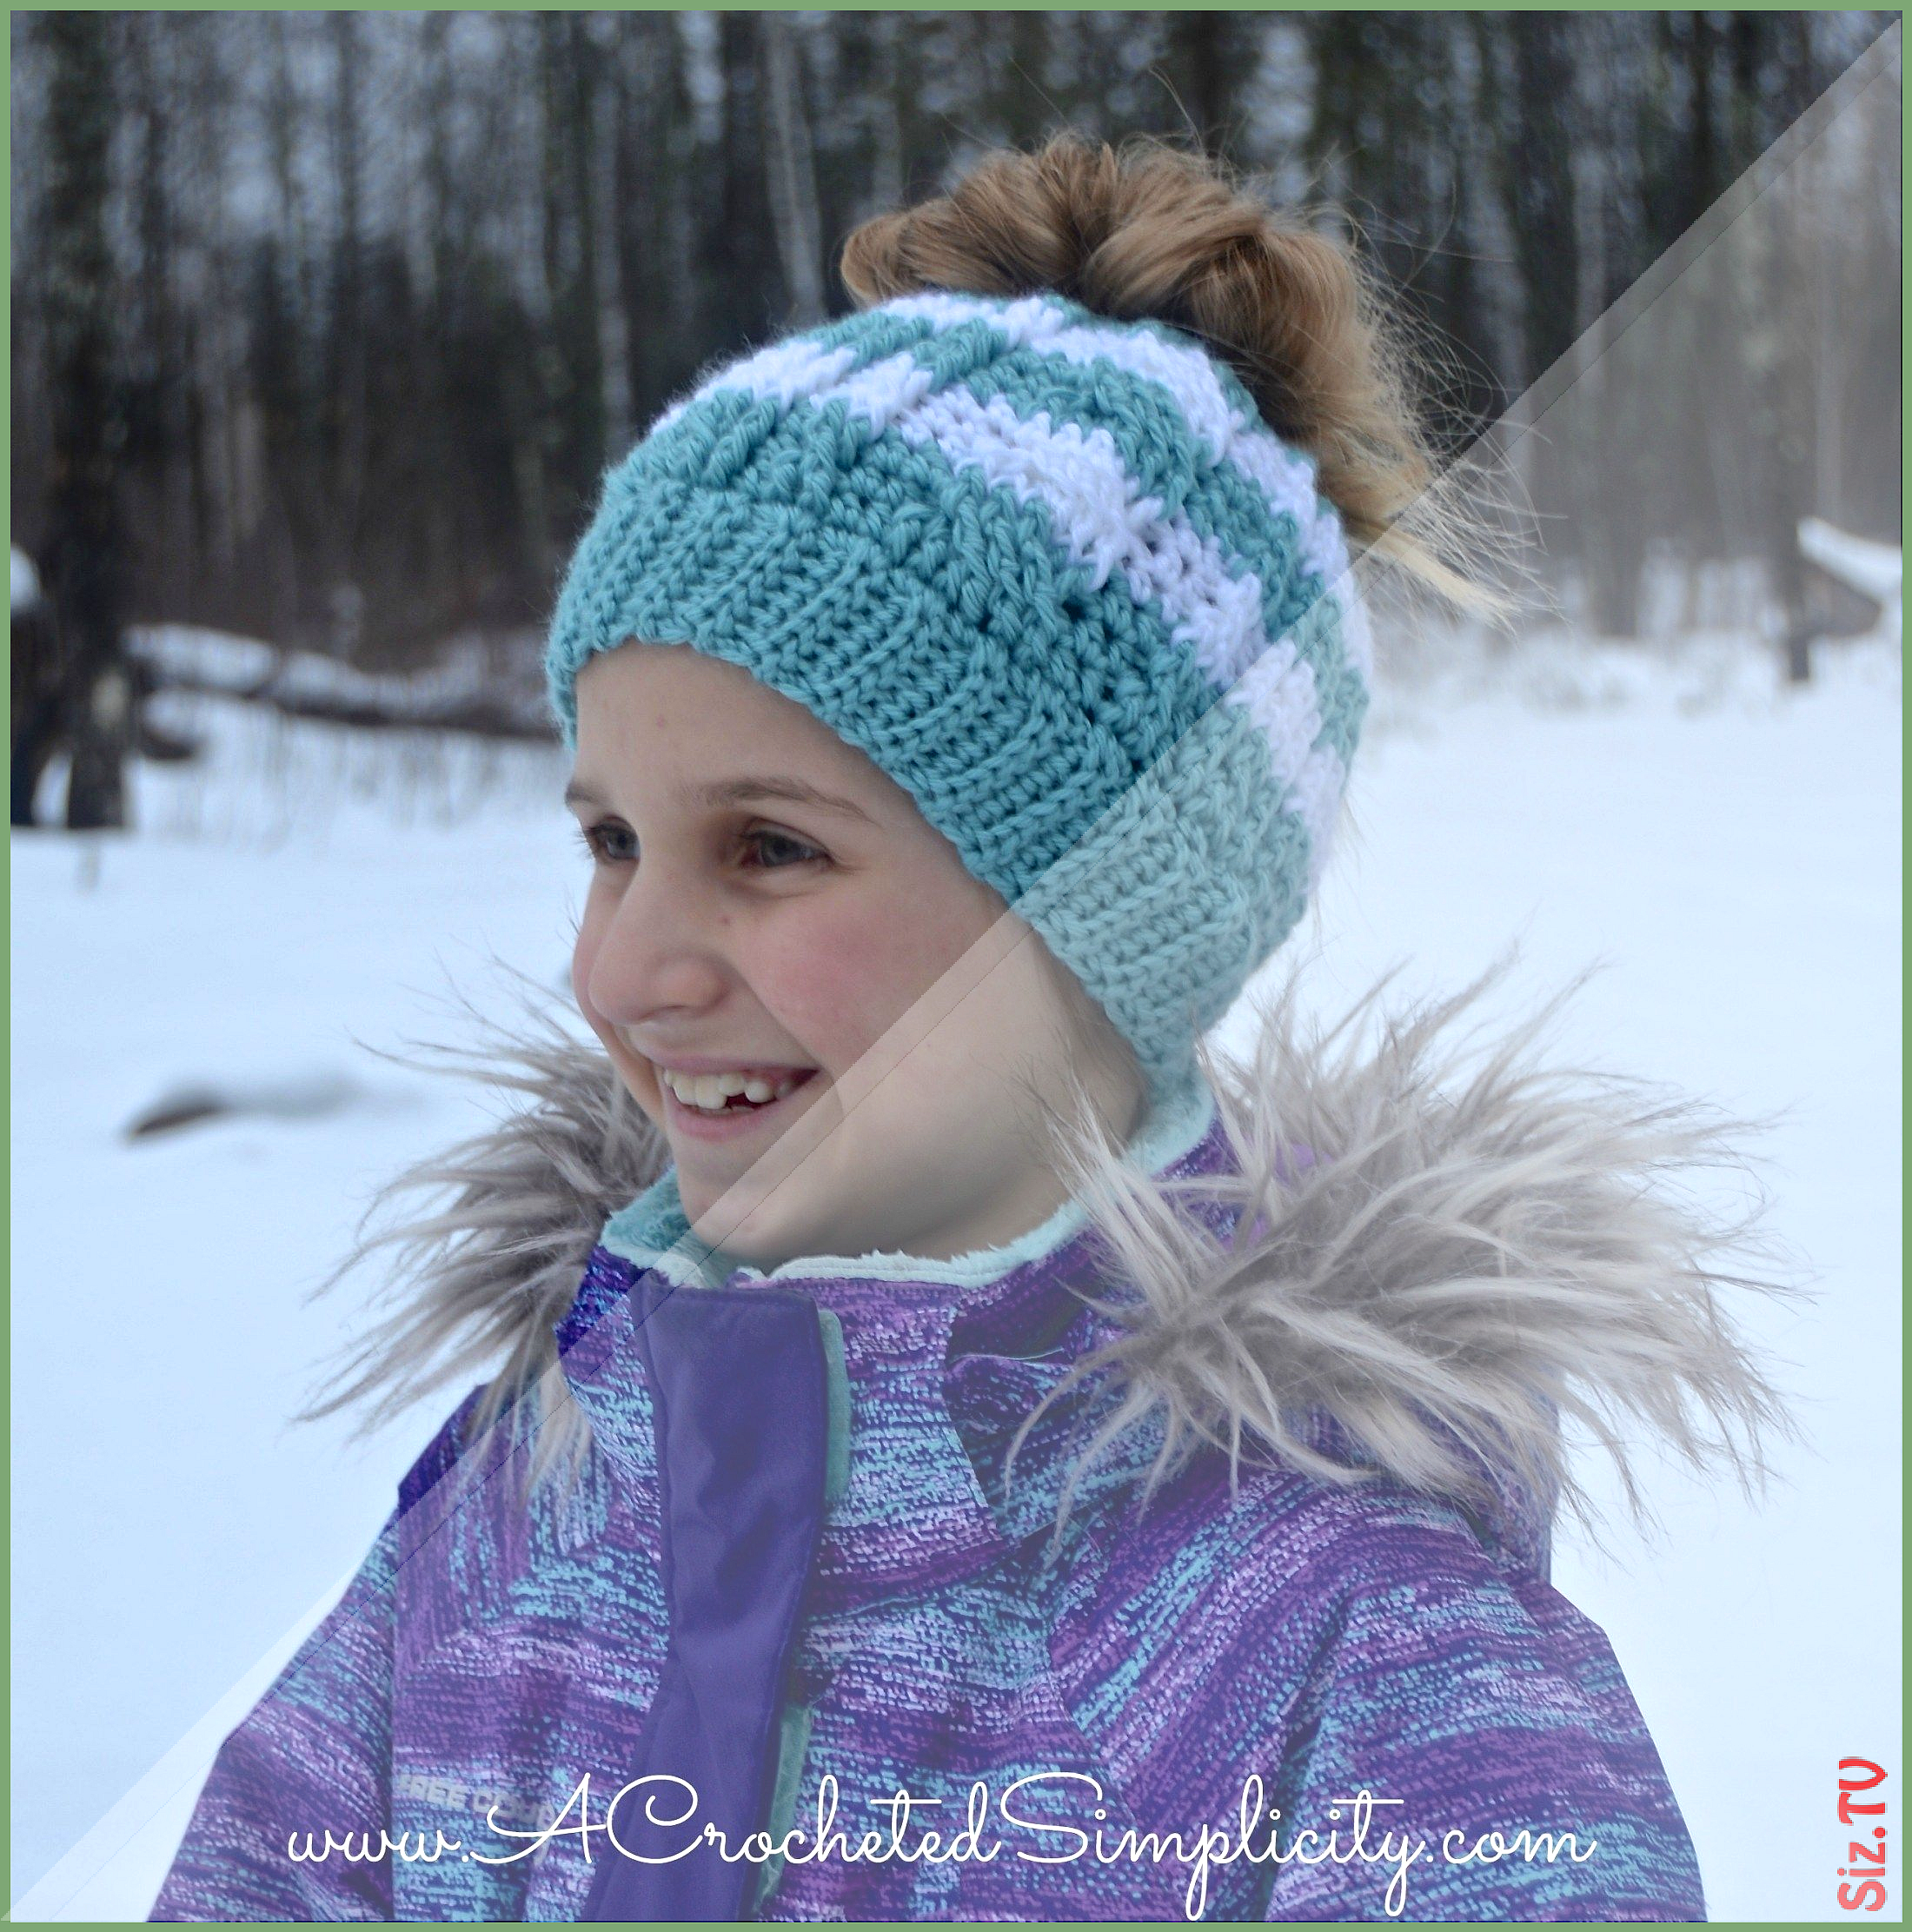 simplicity crocheted included tutorial crochet pattern cabled messy sizes video free kids bun hat byFree Crochet Pattern  Crochet Cabl  simplicity crocheted included tutorial crochet pattern cabled messy sizes video free kids bun hat byFree Crochet Pattern  Crochet Cabl  nbsp  hellip   #byfree #cabled #crochet #crocheted #included #messy #kidsmessyhats